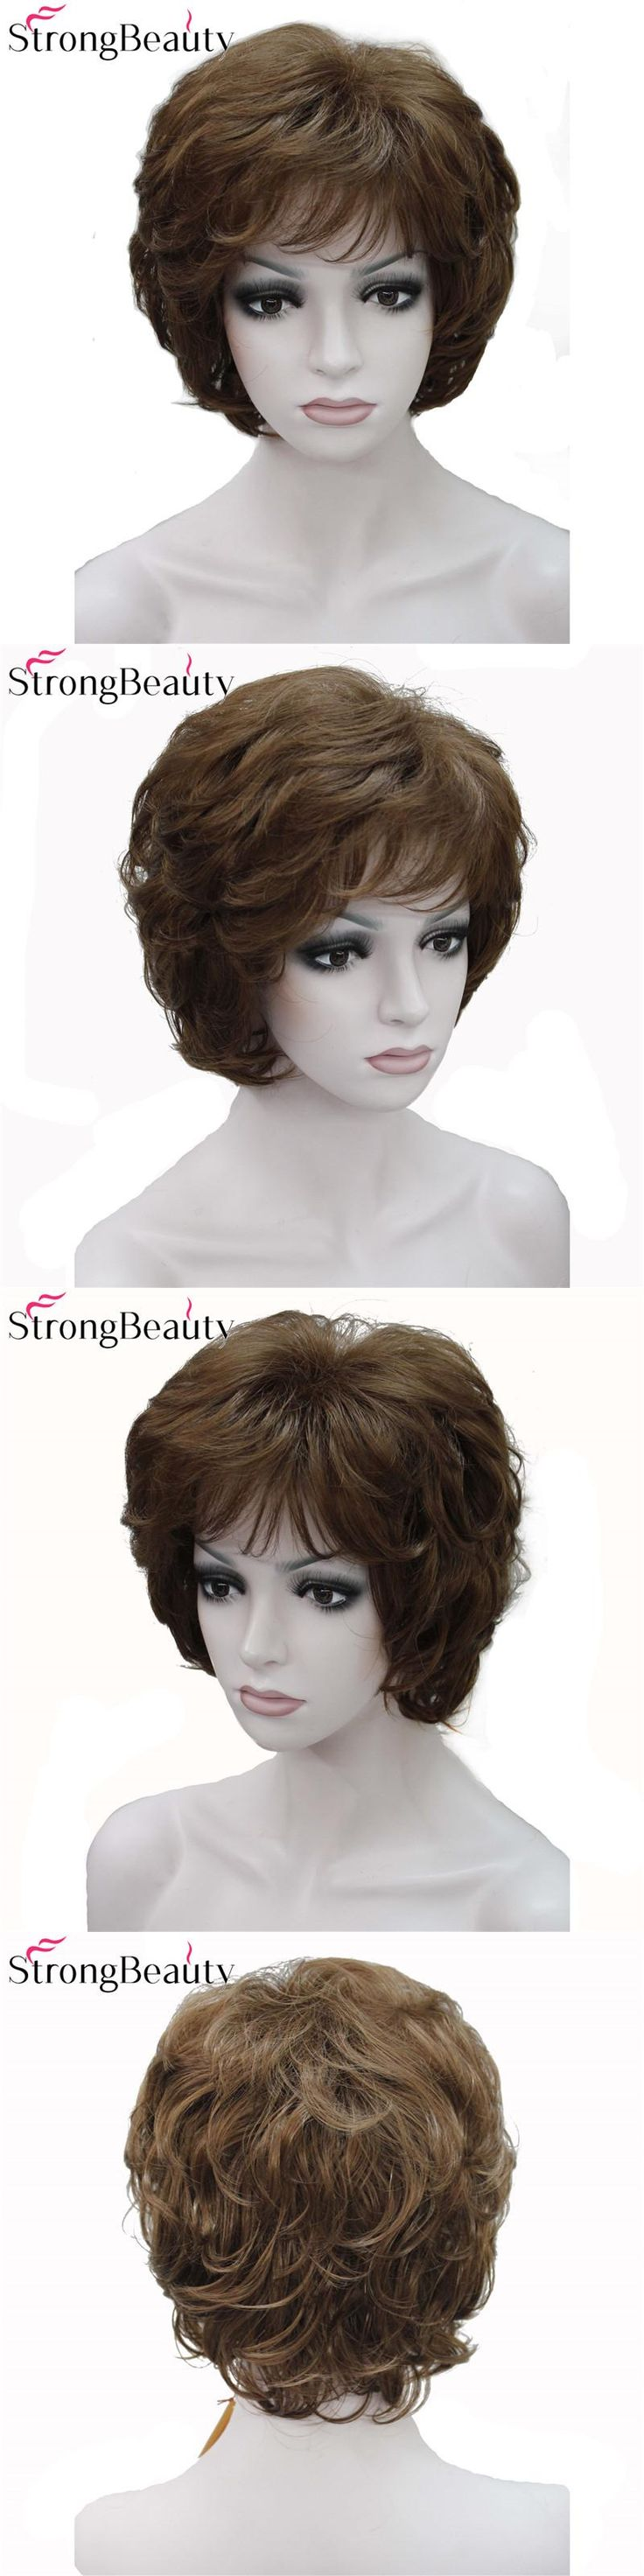 Strong Beauty Ladies Wigs Short Wave Golden Blonde Hair For Women Synthetic Capless Full Wig 16 Colors